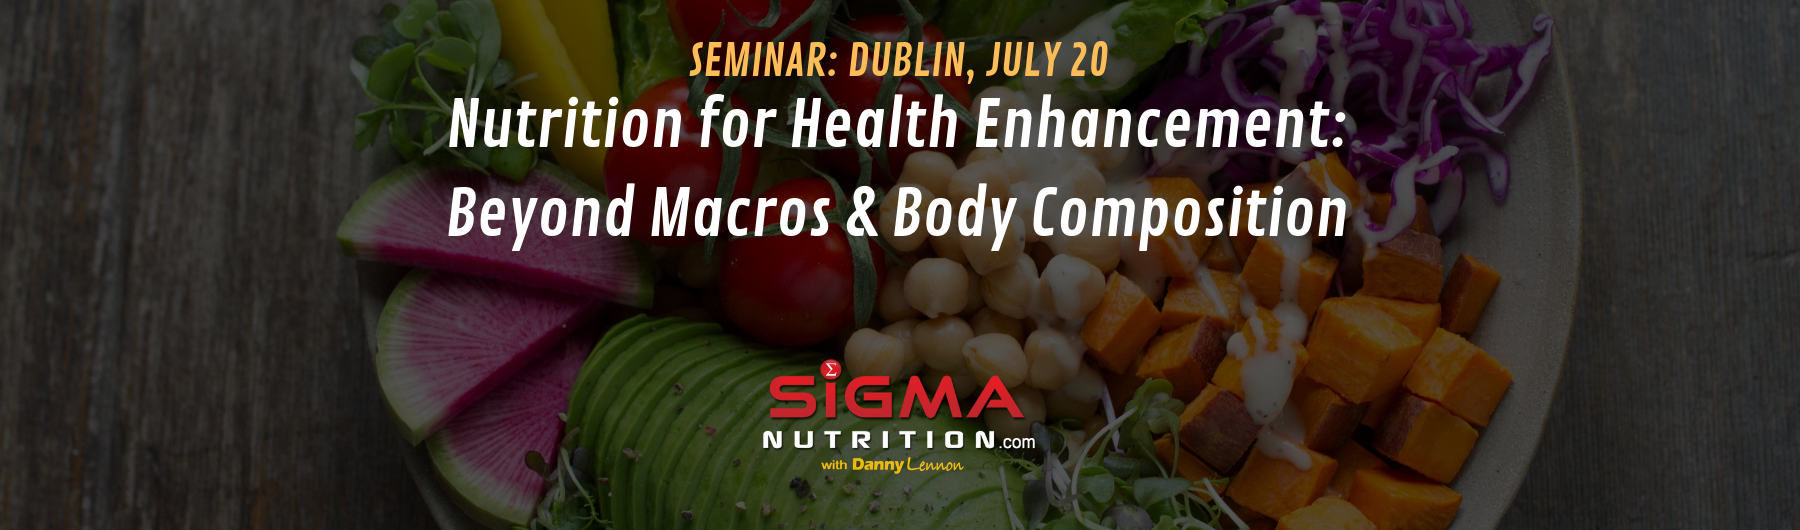 Nutrition for Health Enhancement: Beyond Macros & Body Composition